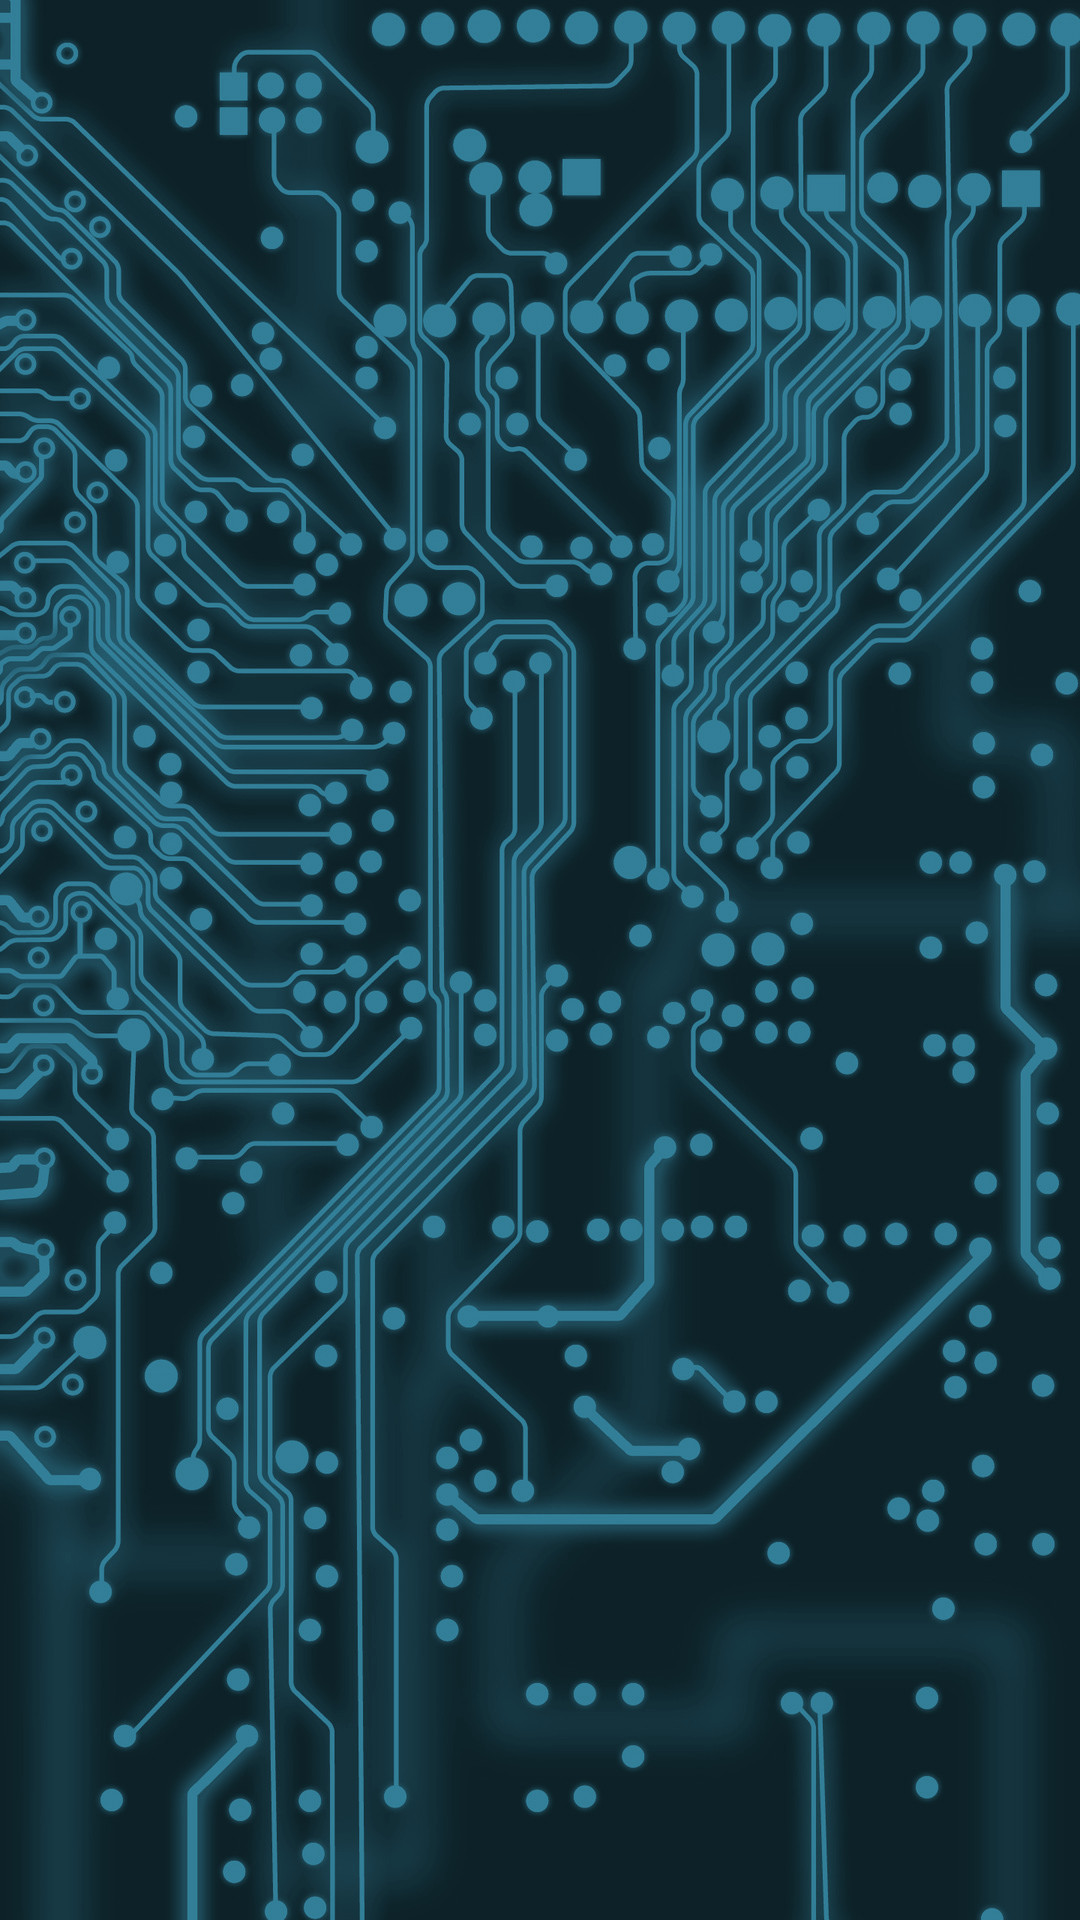 Circuit Board Hd Mobile Wallpapers For Samsung Wallpaper Images